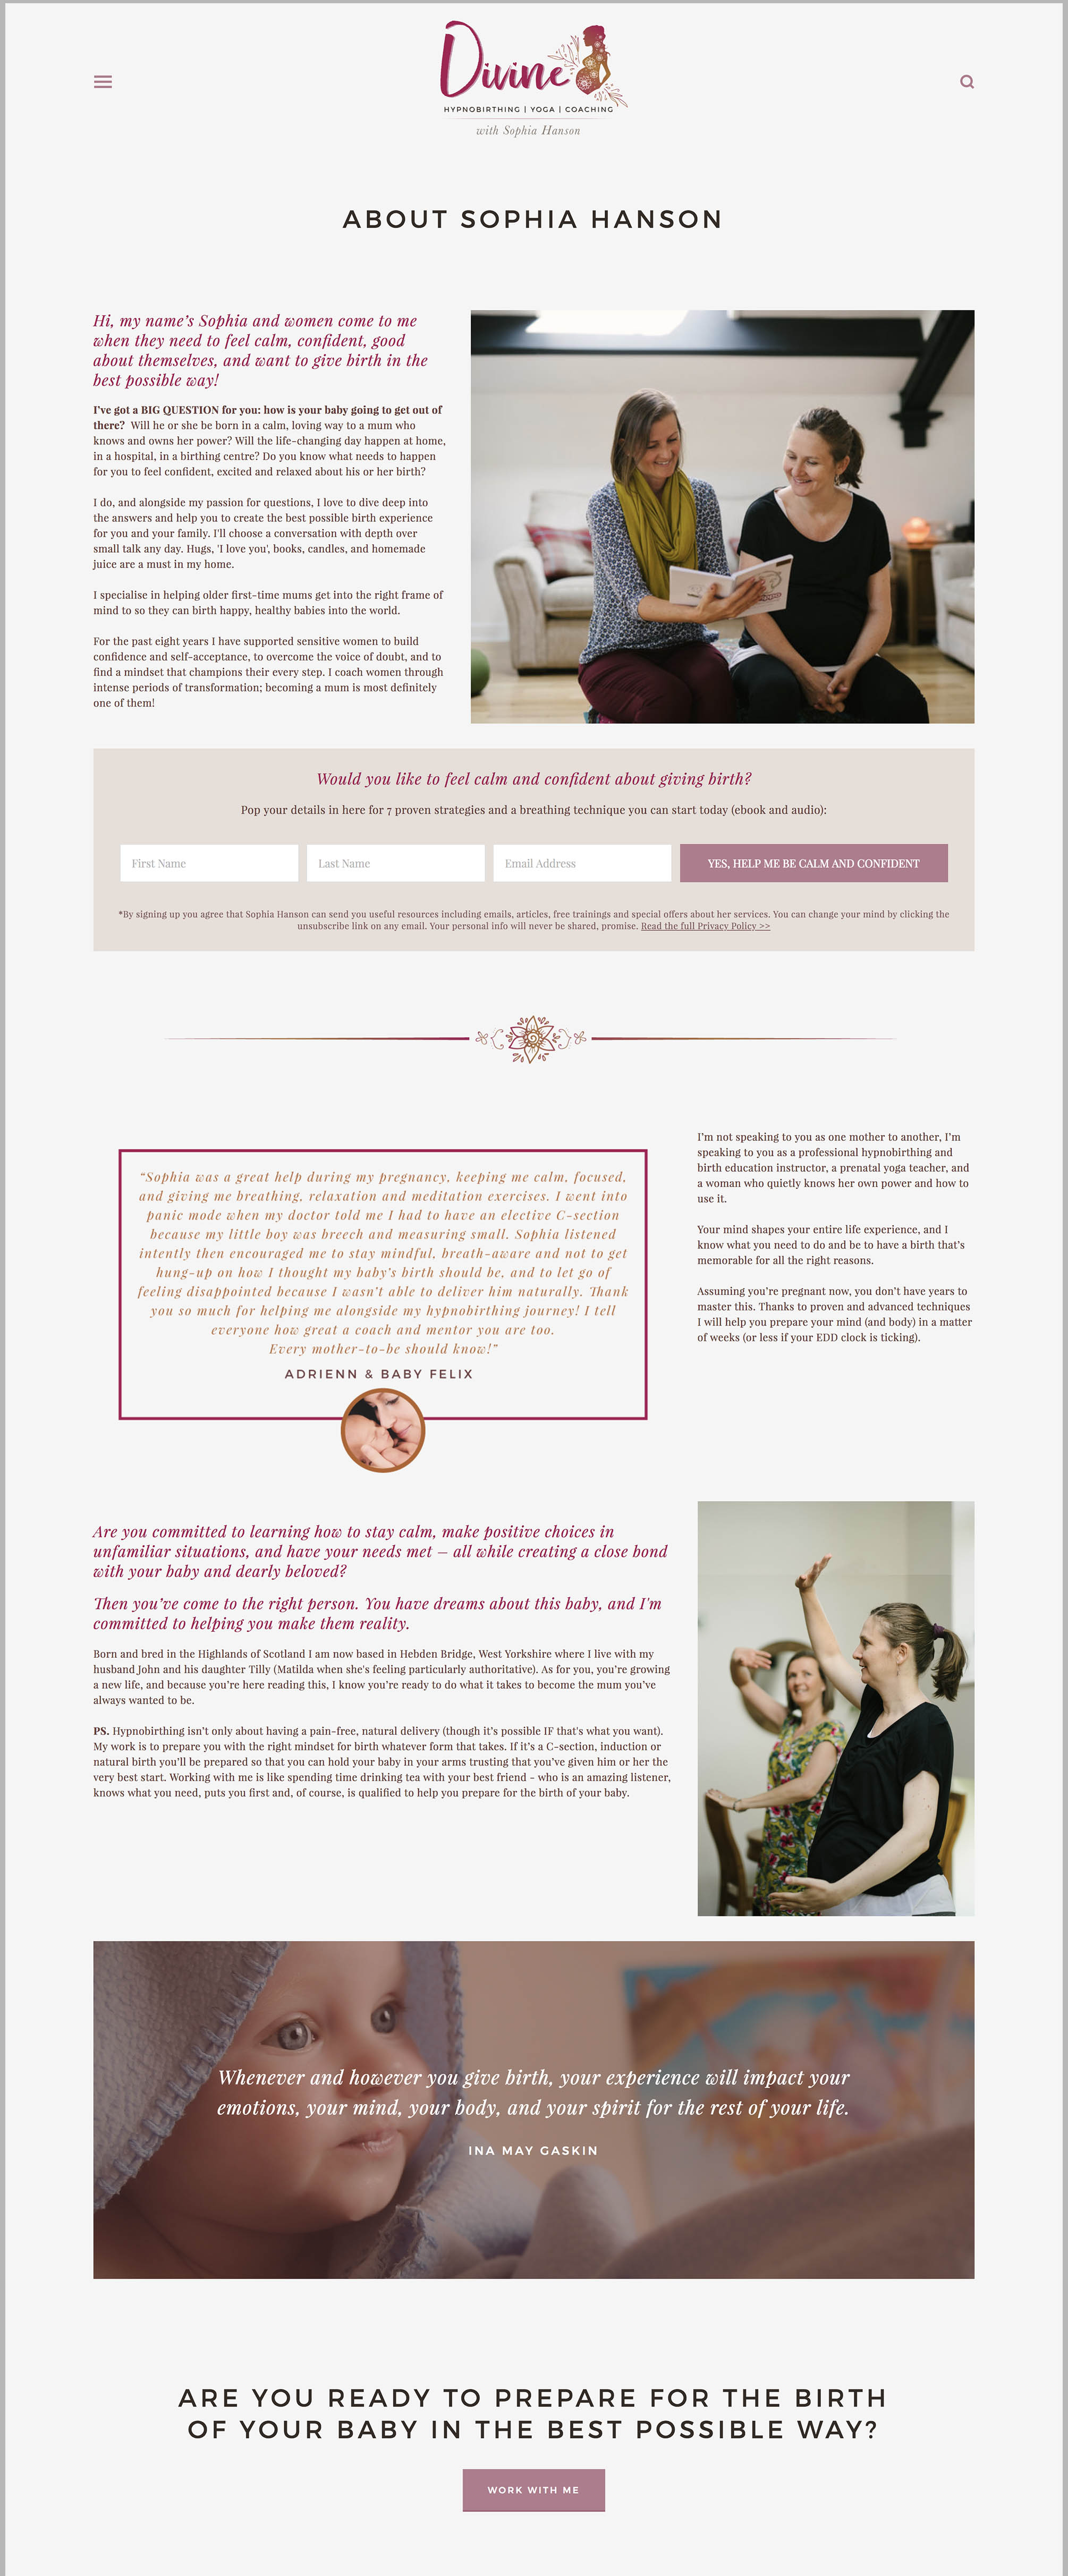 Sophia from Divine Hypnobirthing  has included professional photography of herself and some 'behind-the-scenes' style imagery of her doing her work too.